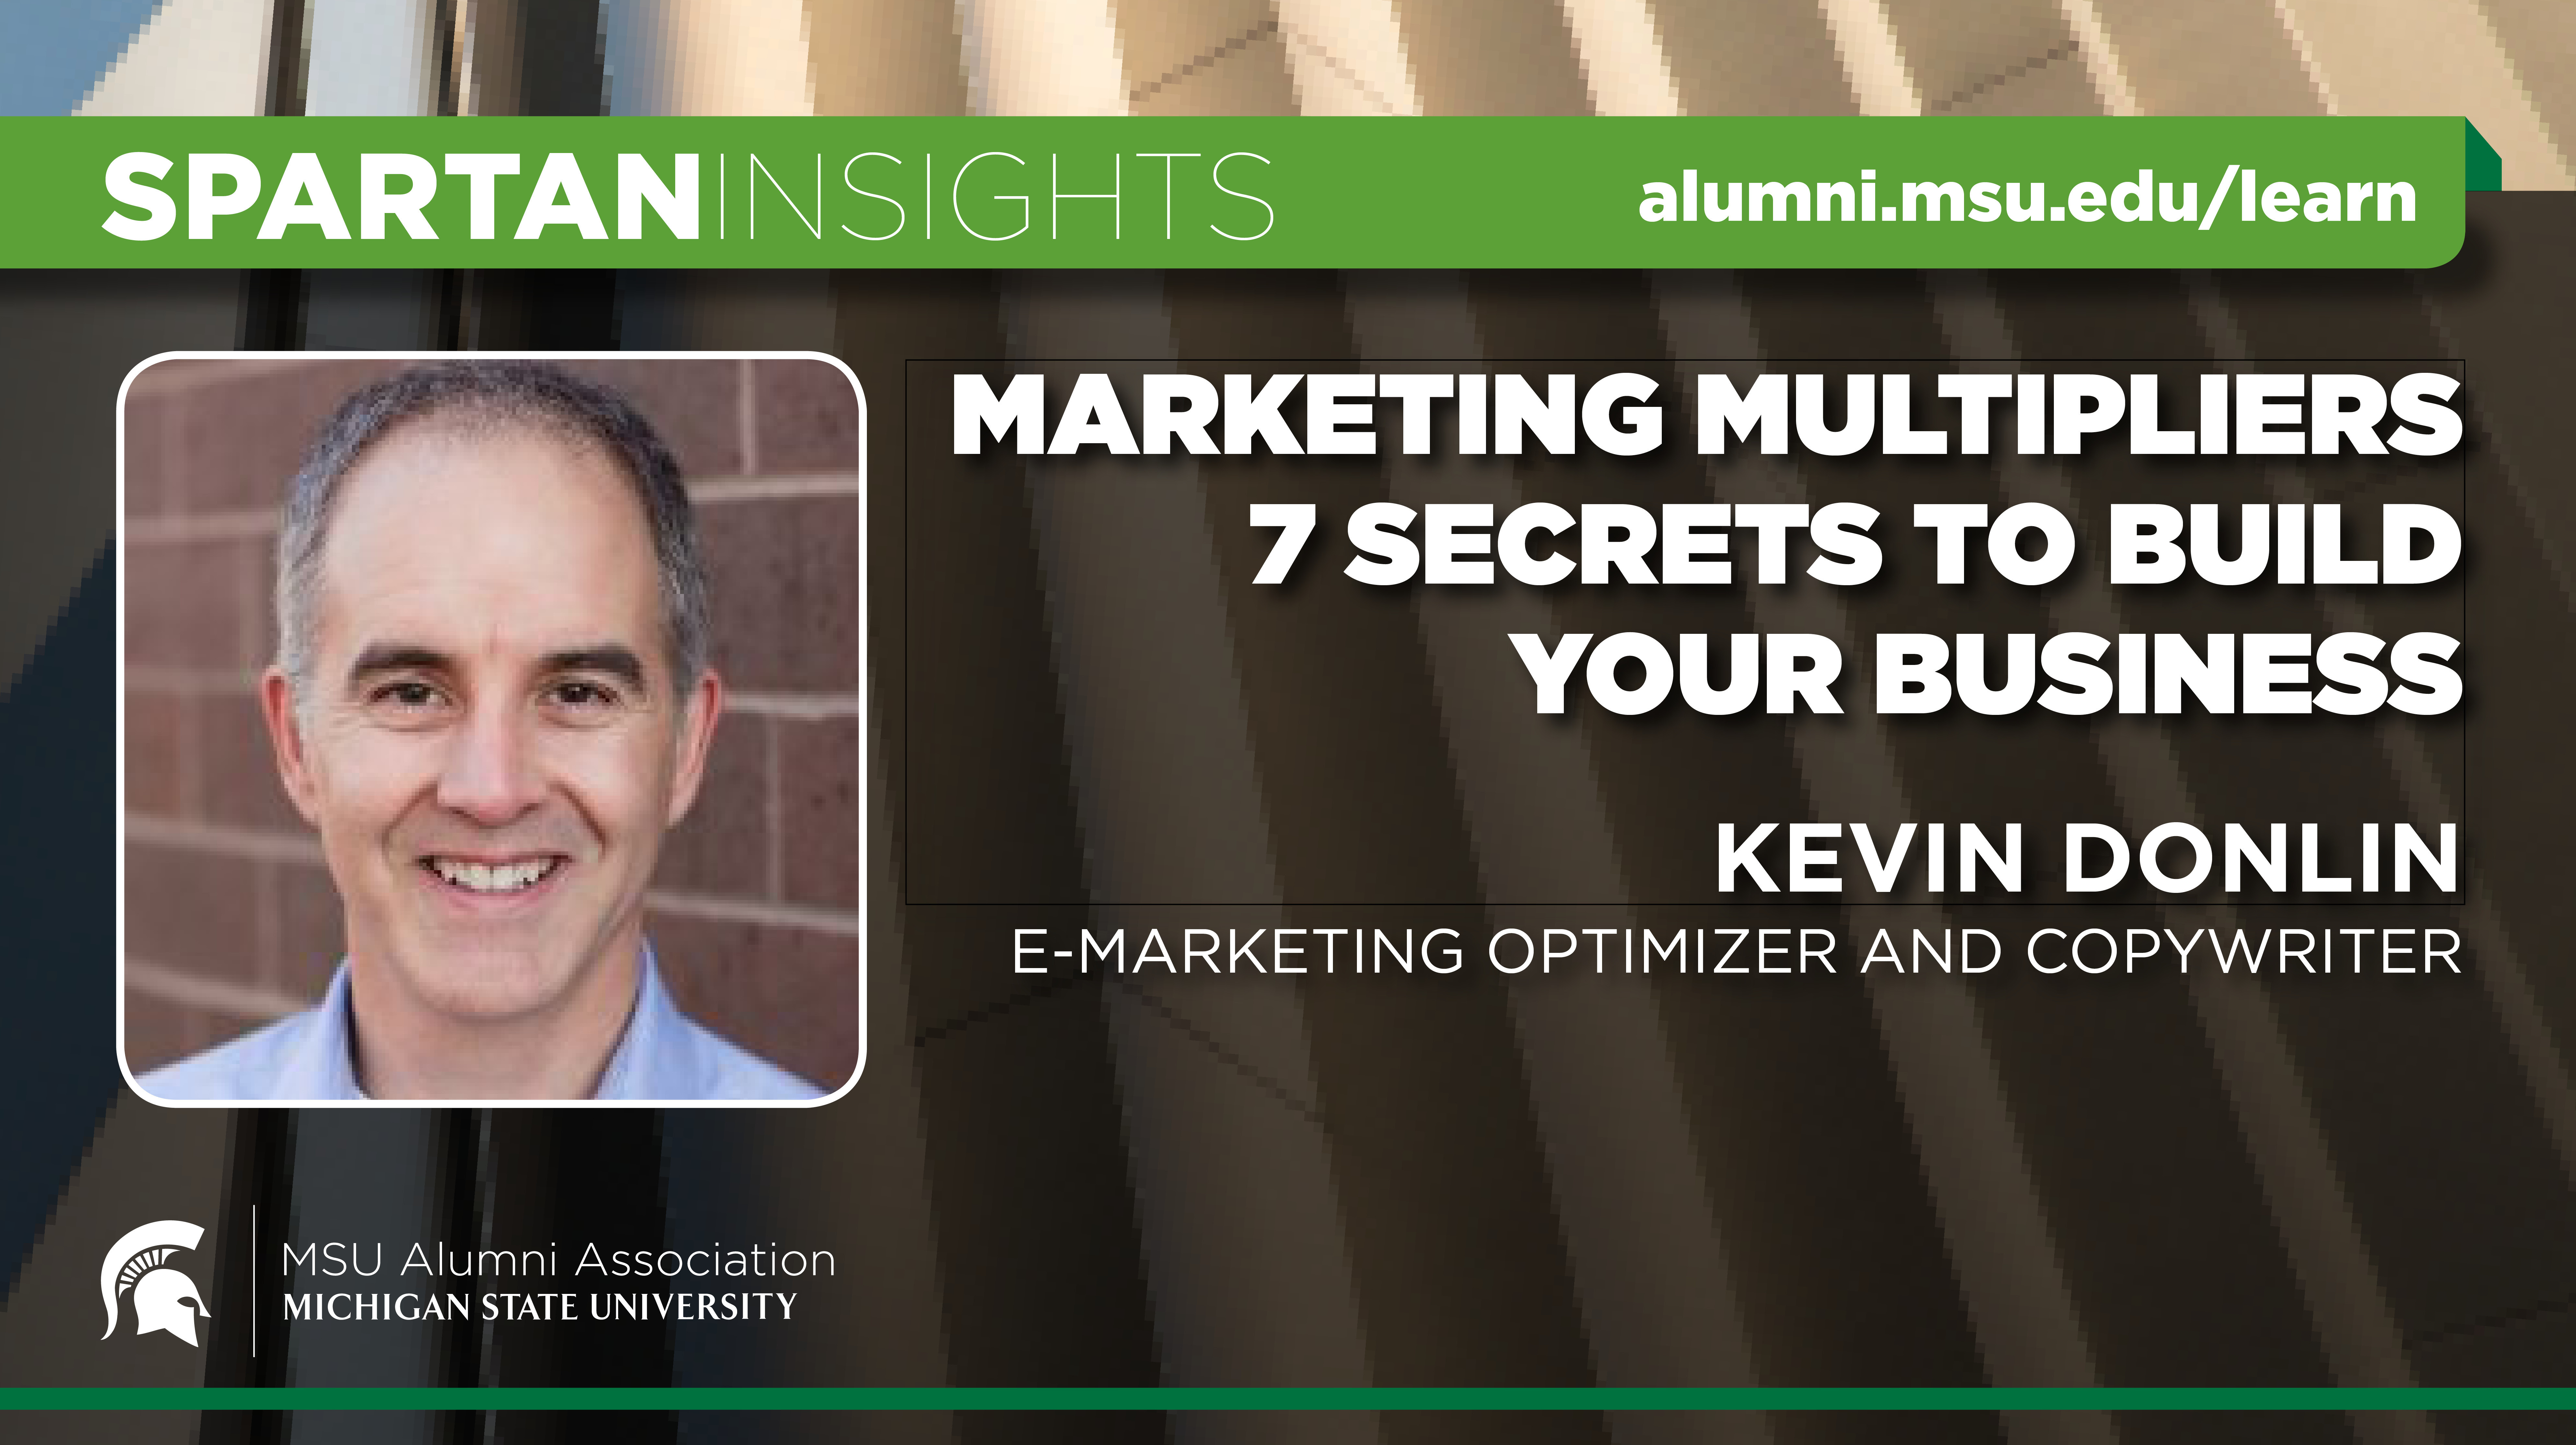 webinar cover image for Kevin Donlin | Marketing Multipliers 7 Secrets To Build Your Business